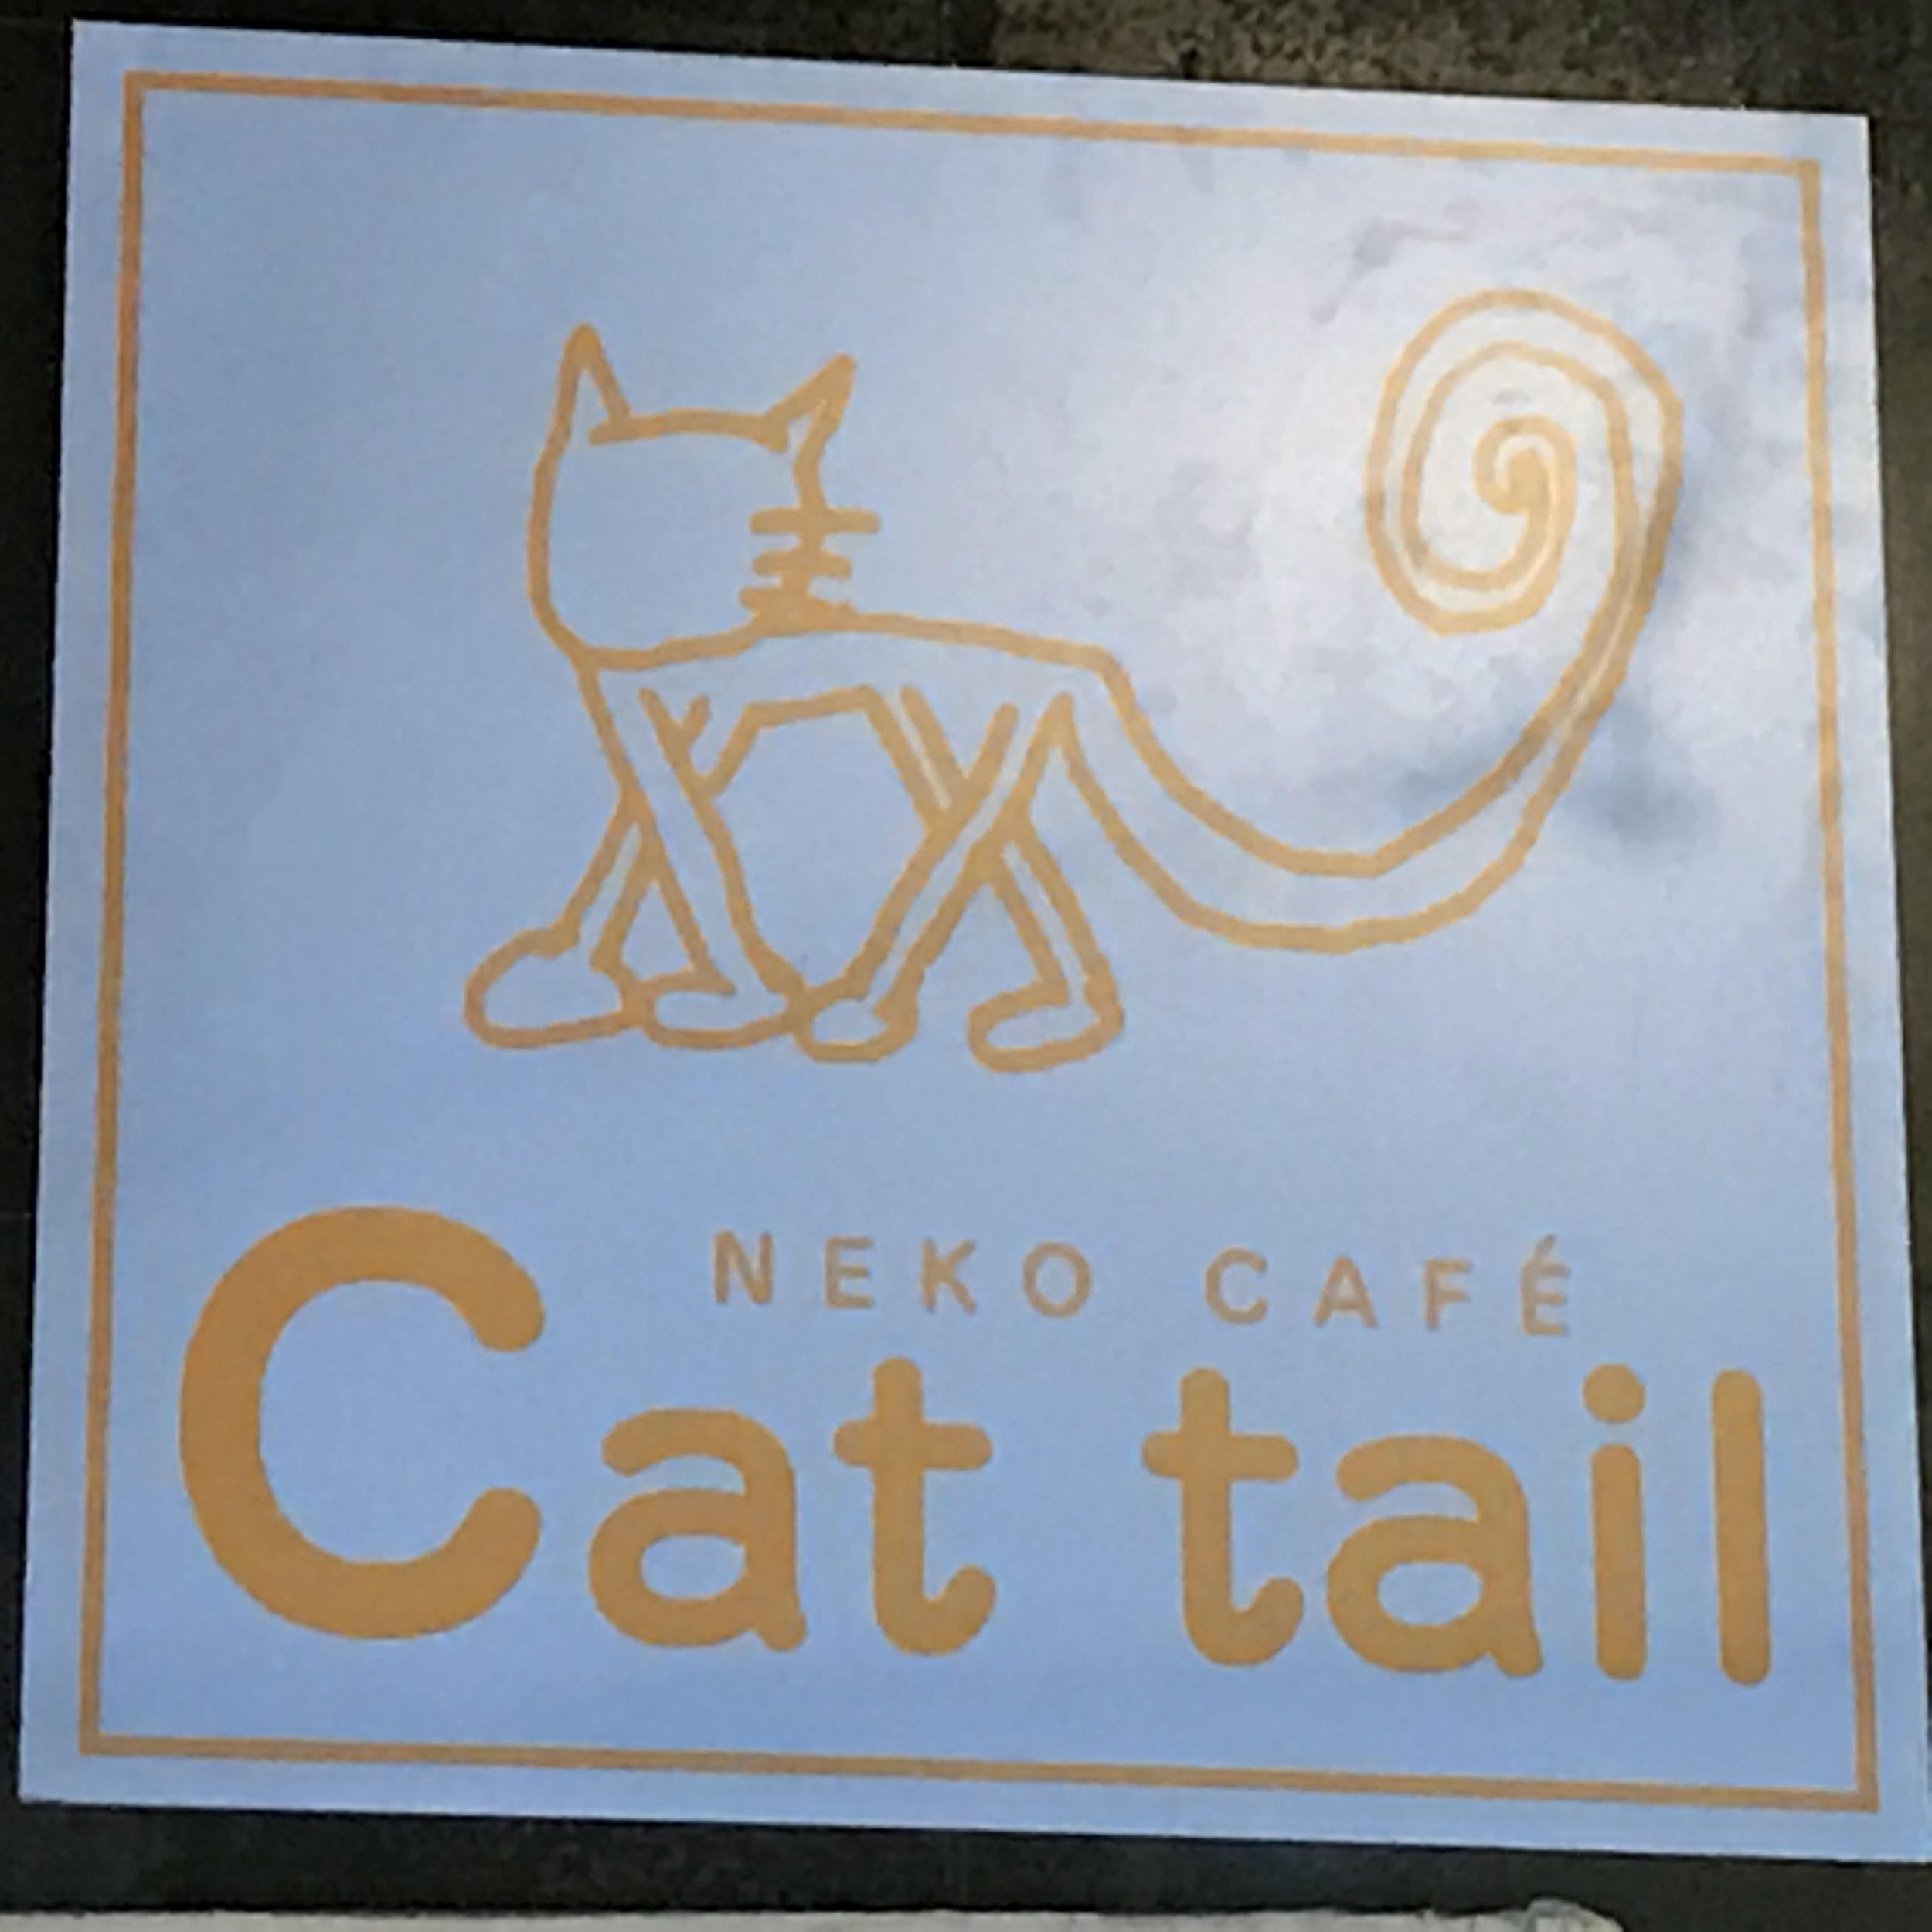 Neko Cafe Cat Tail   Osaka, Japan